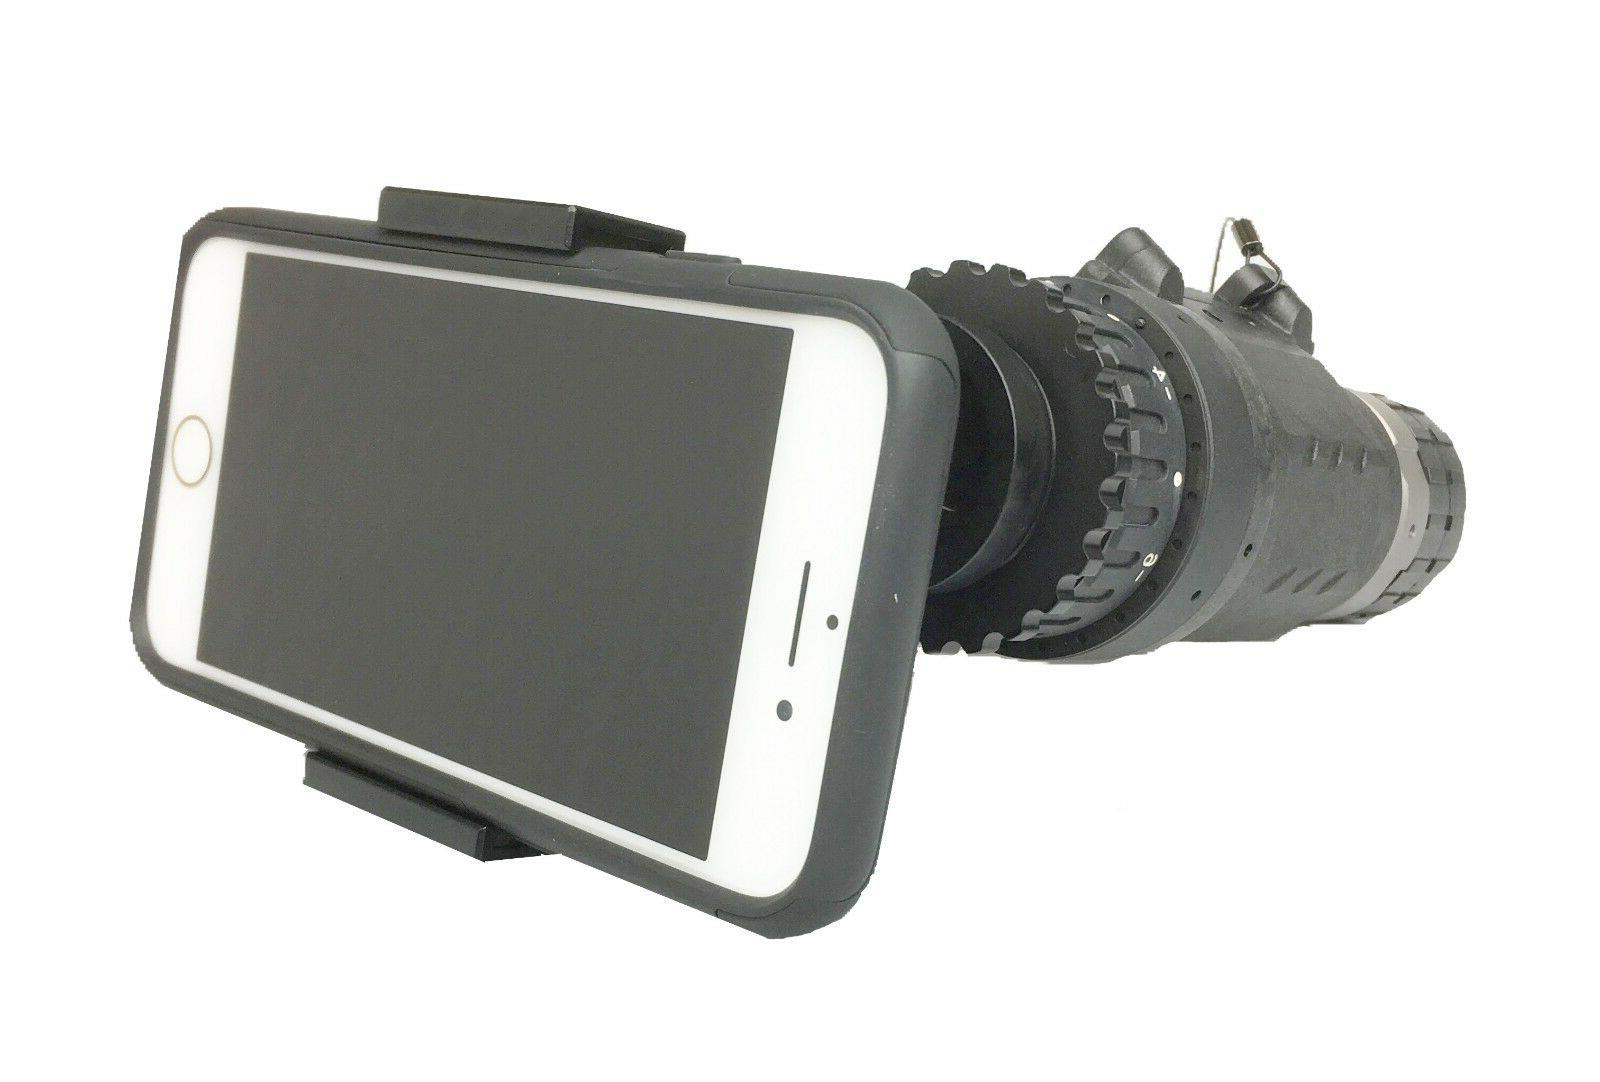 universal smartphone adapter for thermal night vision